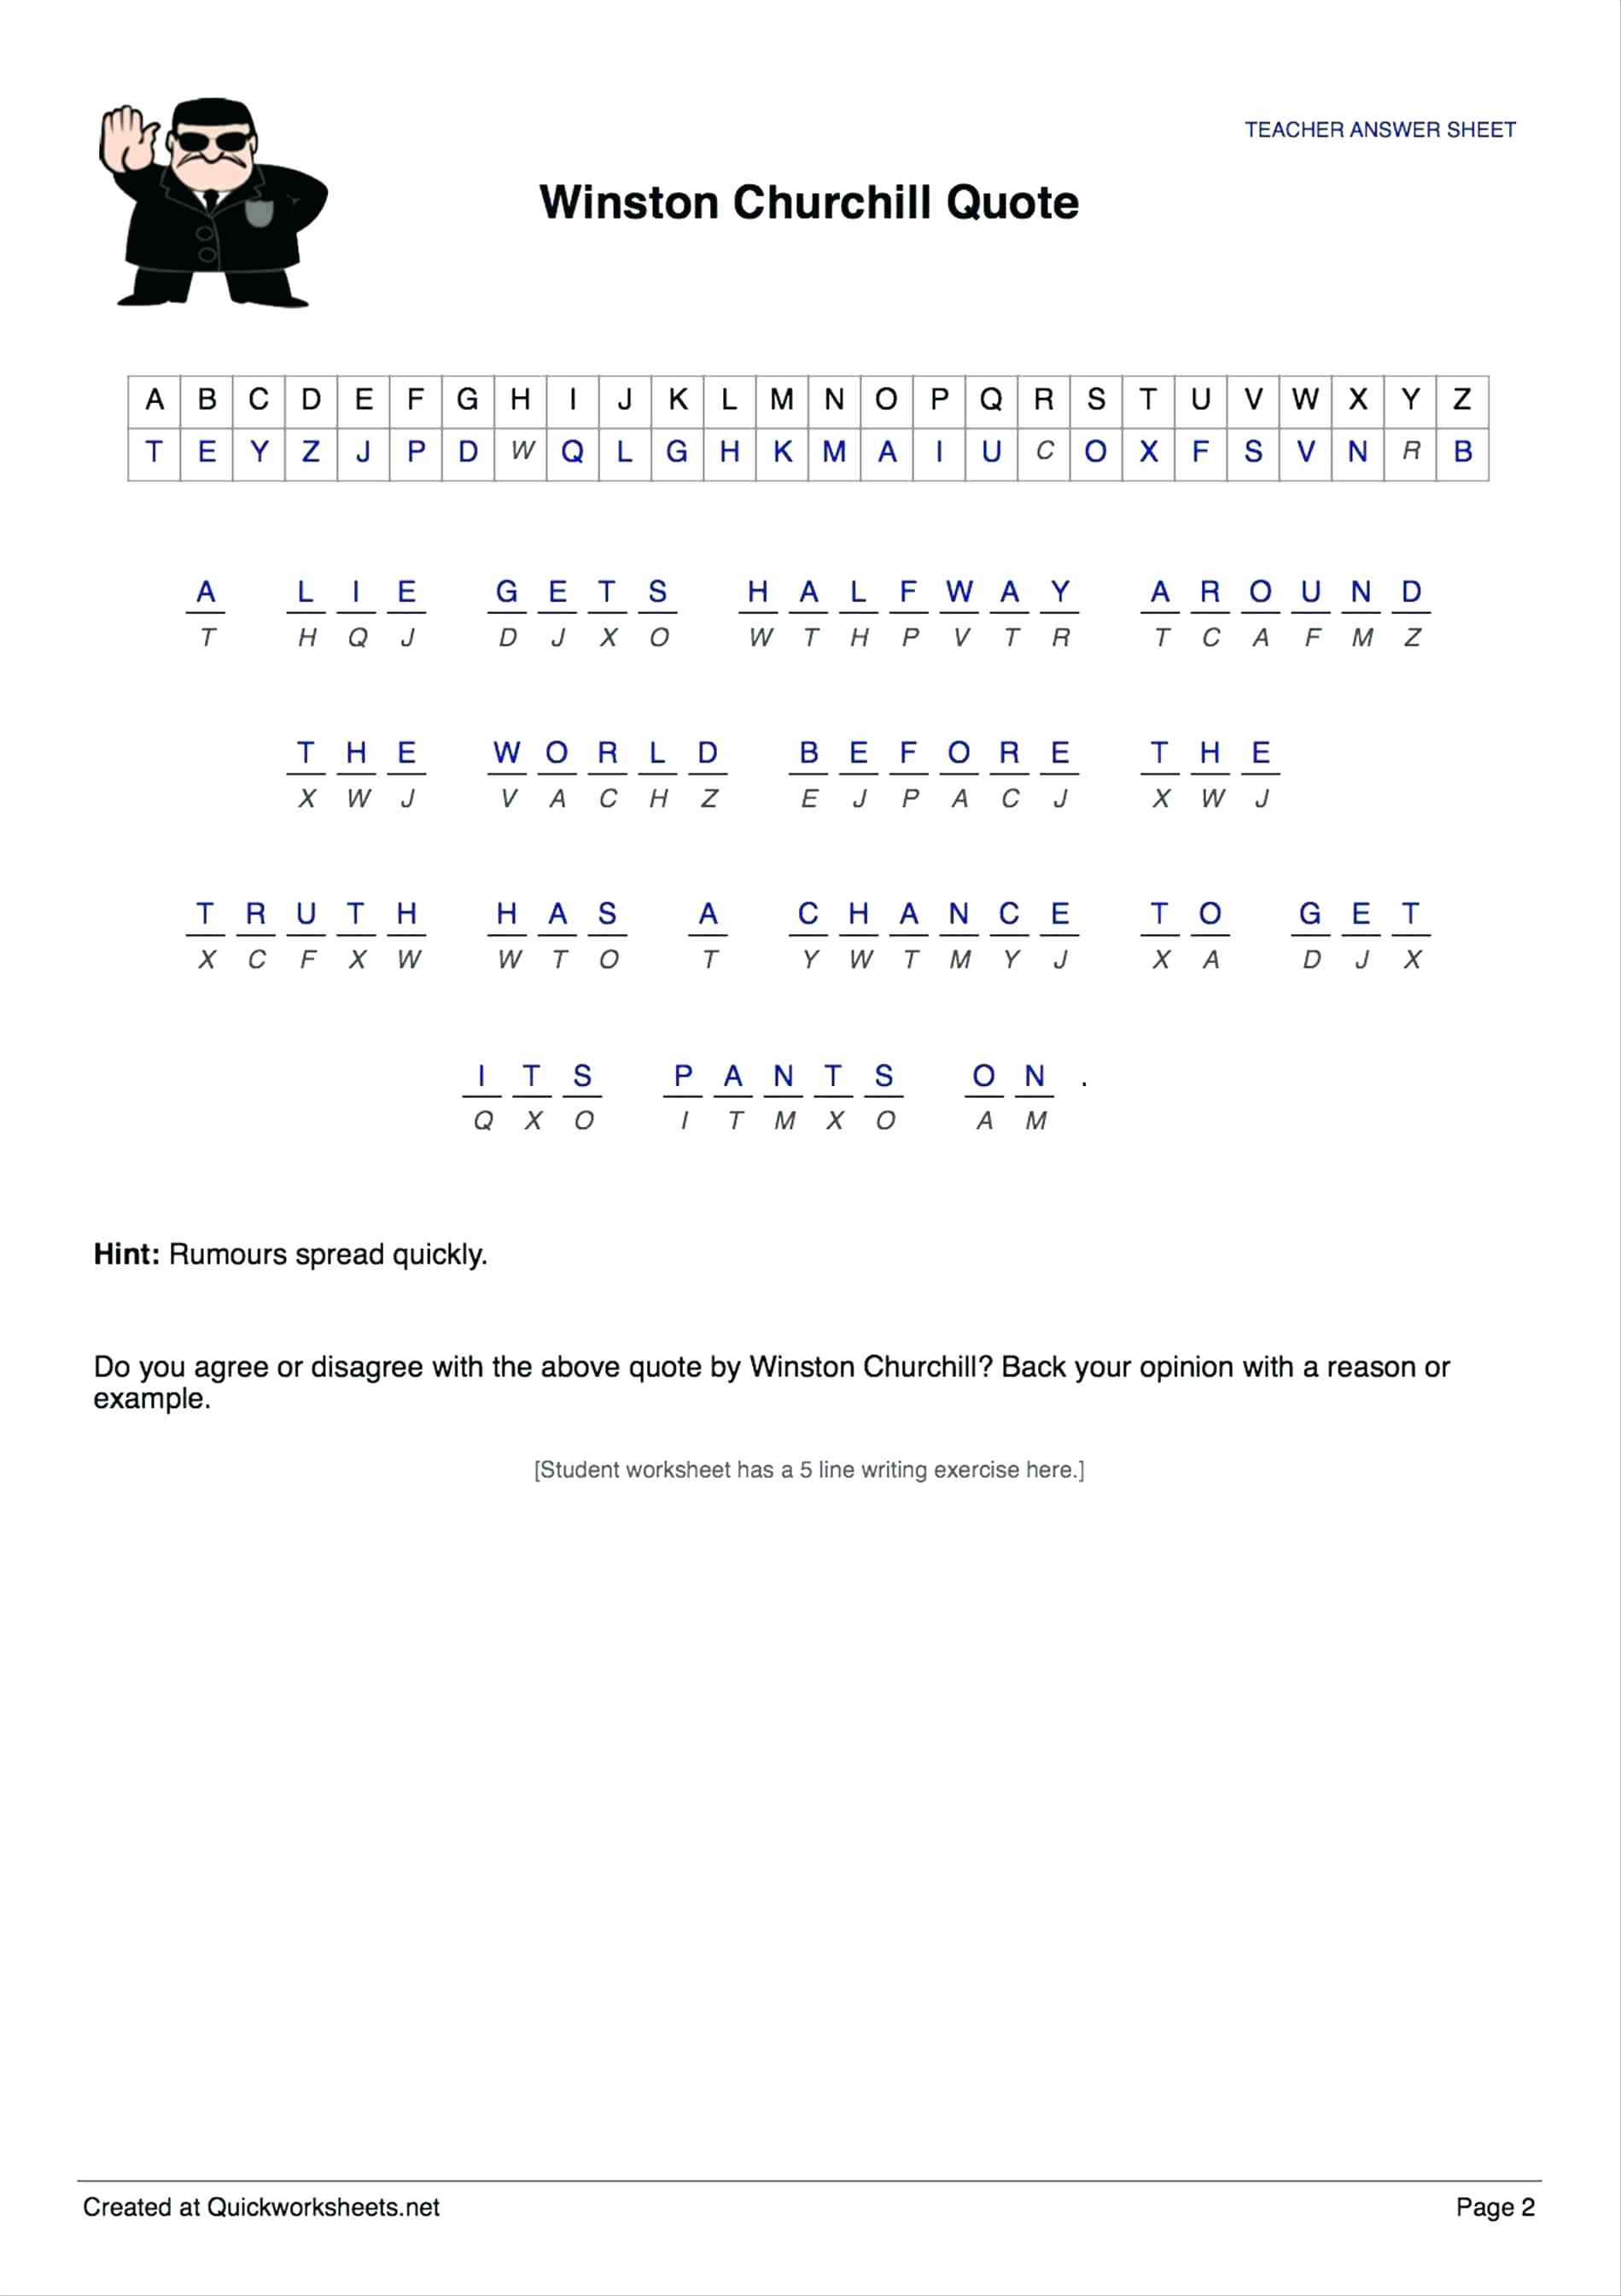 Printable Cryptogram Puzzles Medieval Printable Cryptogram Puzzles - Free Printable Cryptograms With Answers